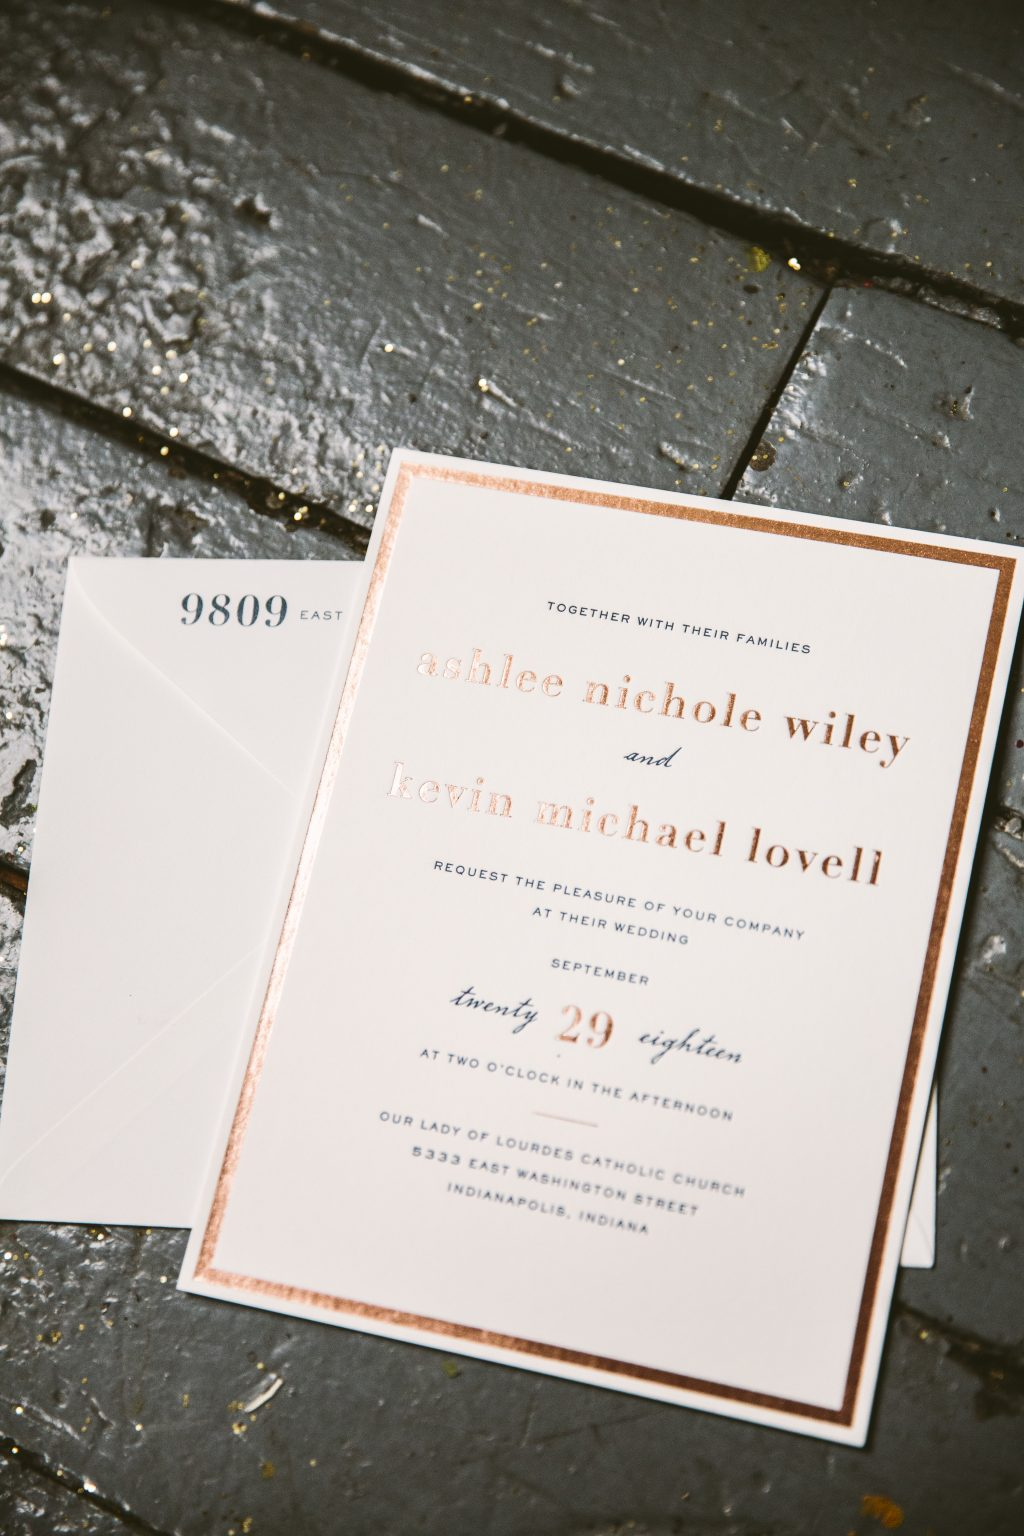 Rose gold wedding invitations with navy touches